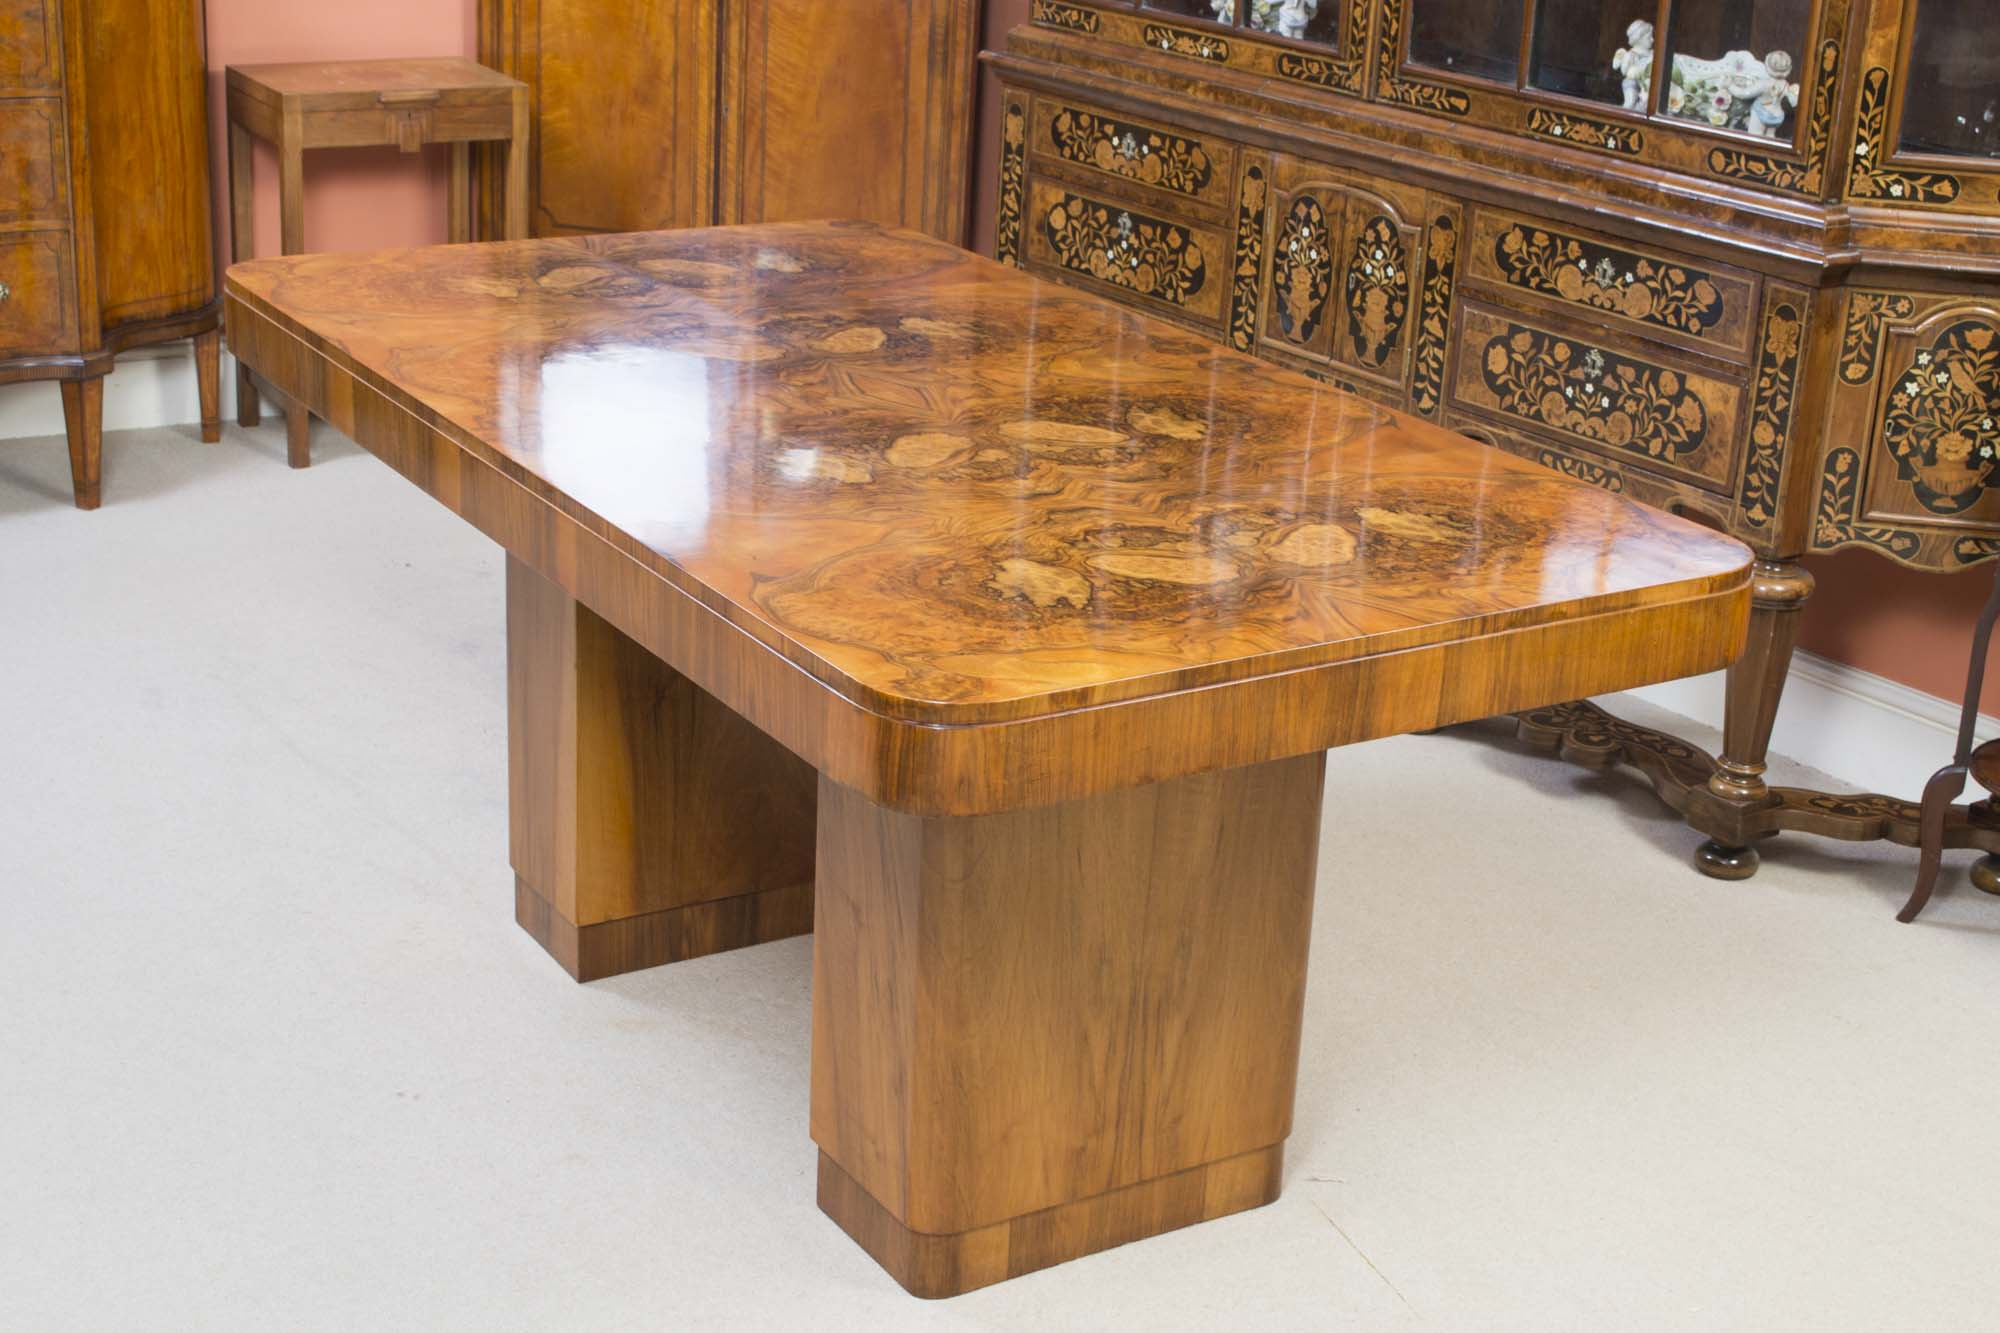 Astonishing Art Deco Furniture At Regent Antiques Regent Antiques